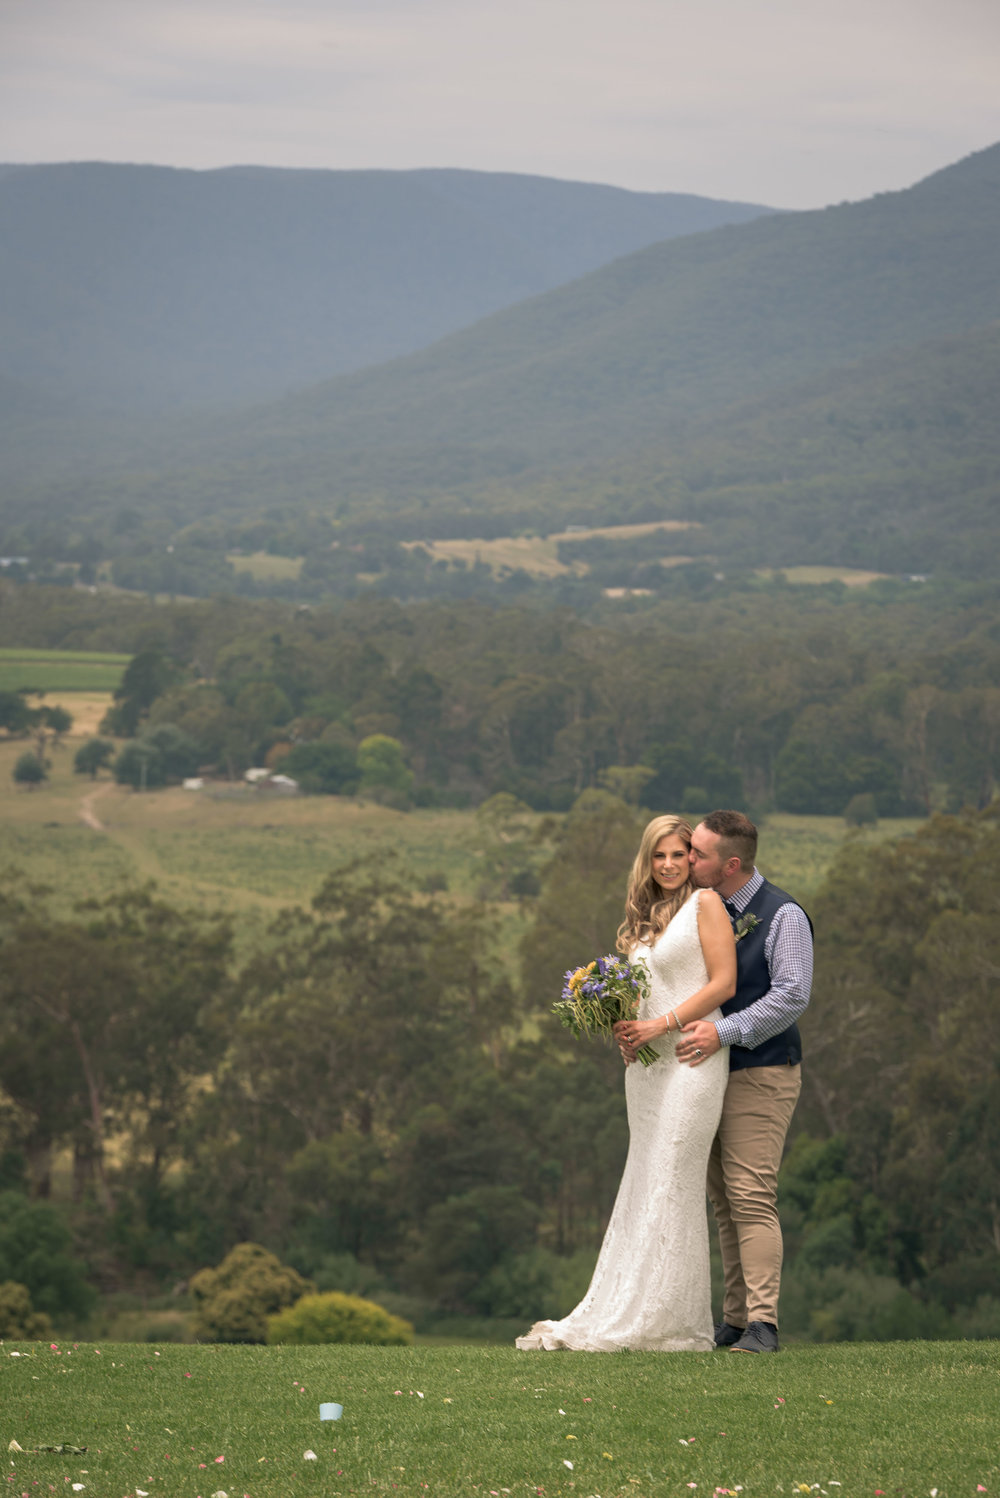 Mark Carniato Photography - Wedding Photography Melbourne (68).jpg